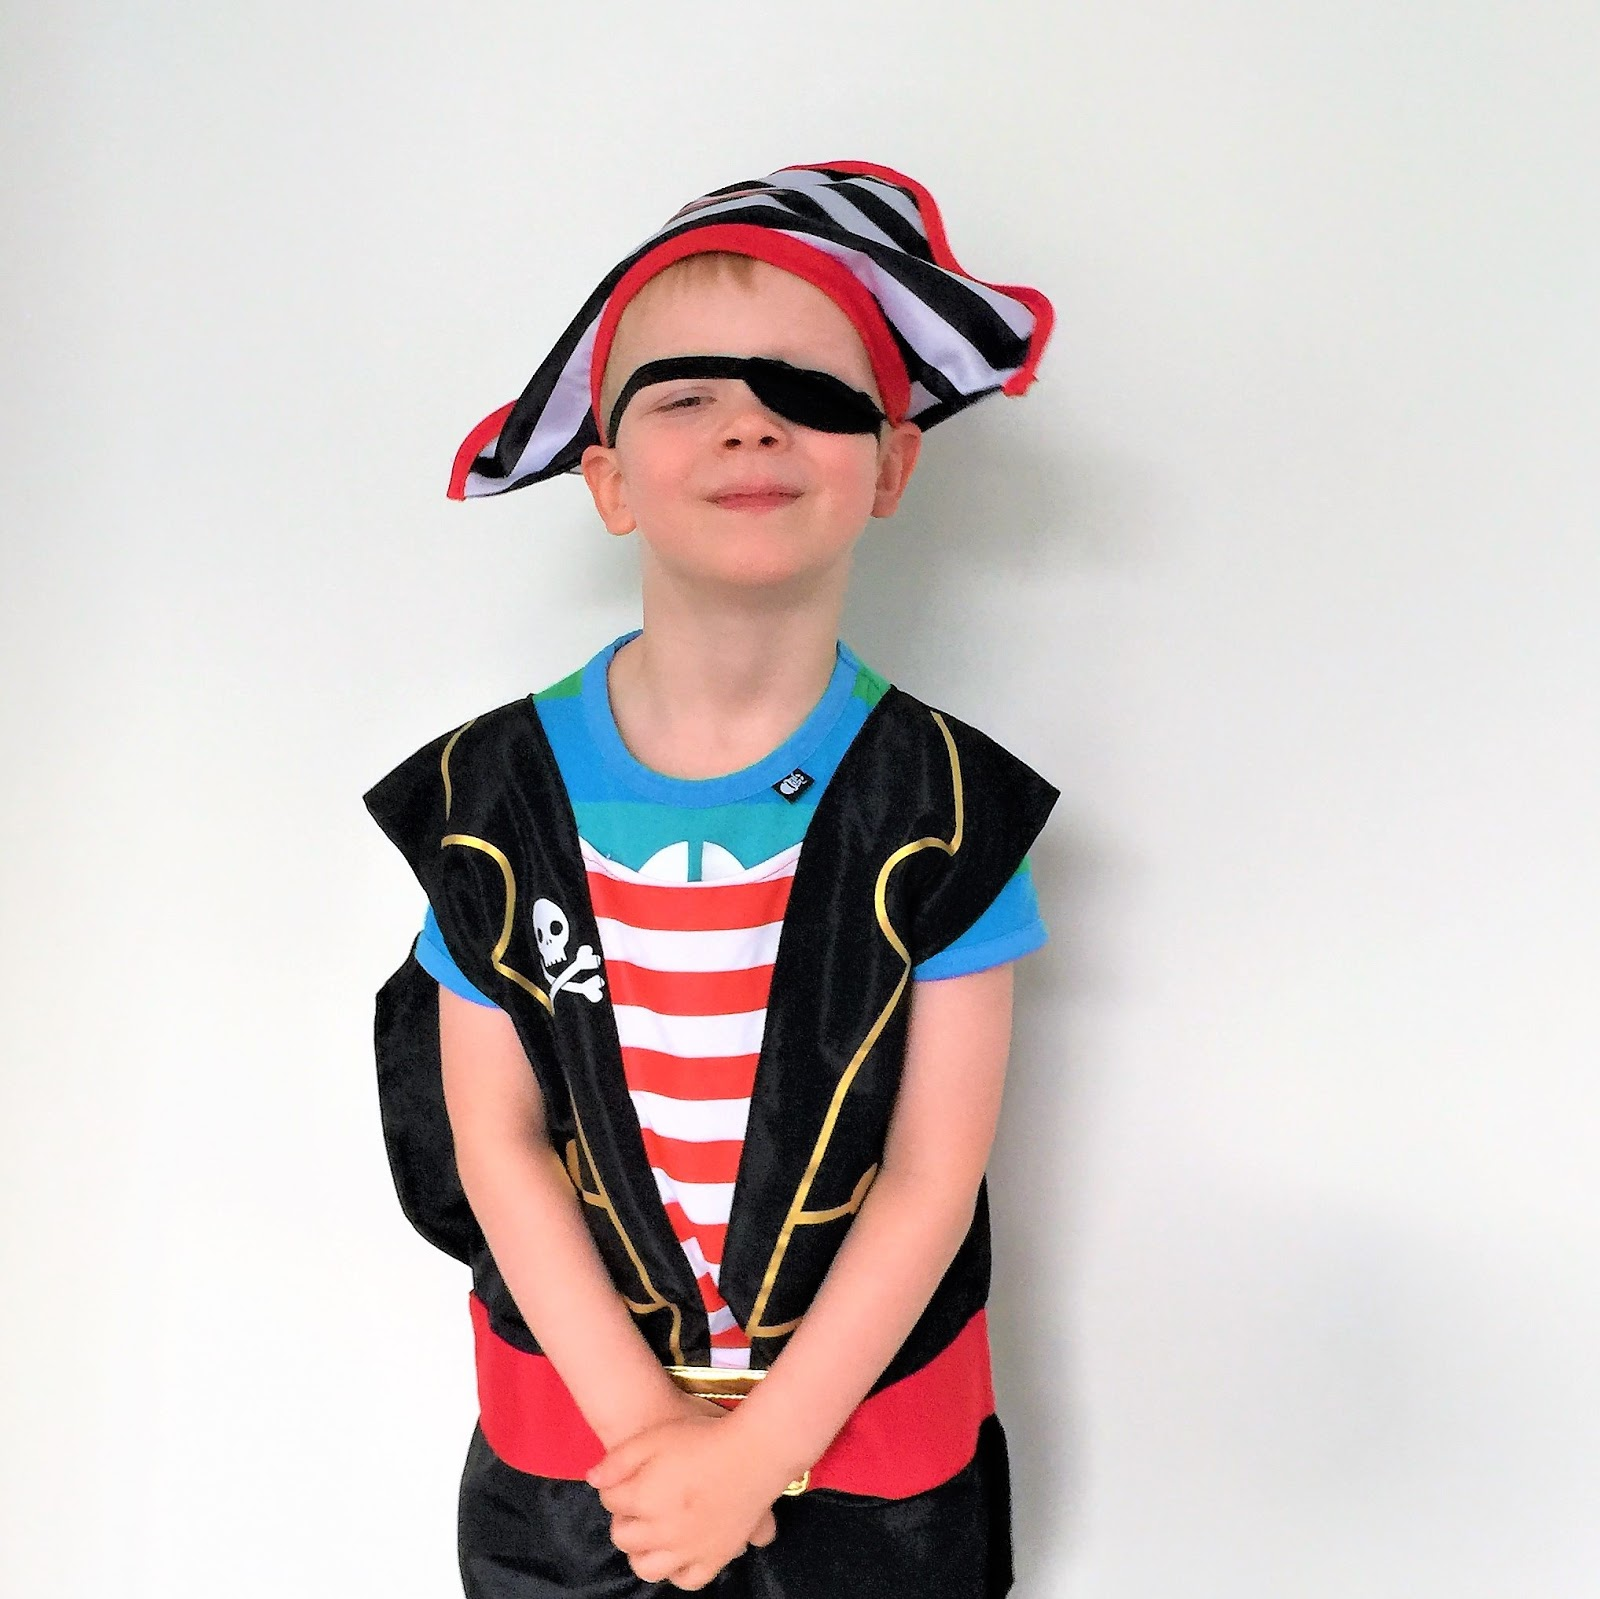 Toy Review Kids Dress Up Costumes From Tono From Pink Poppy The